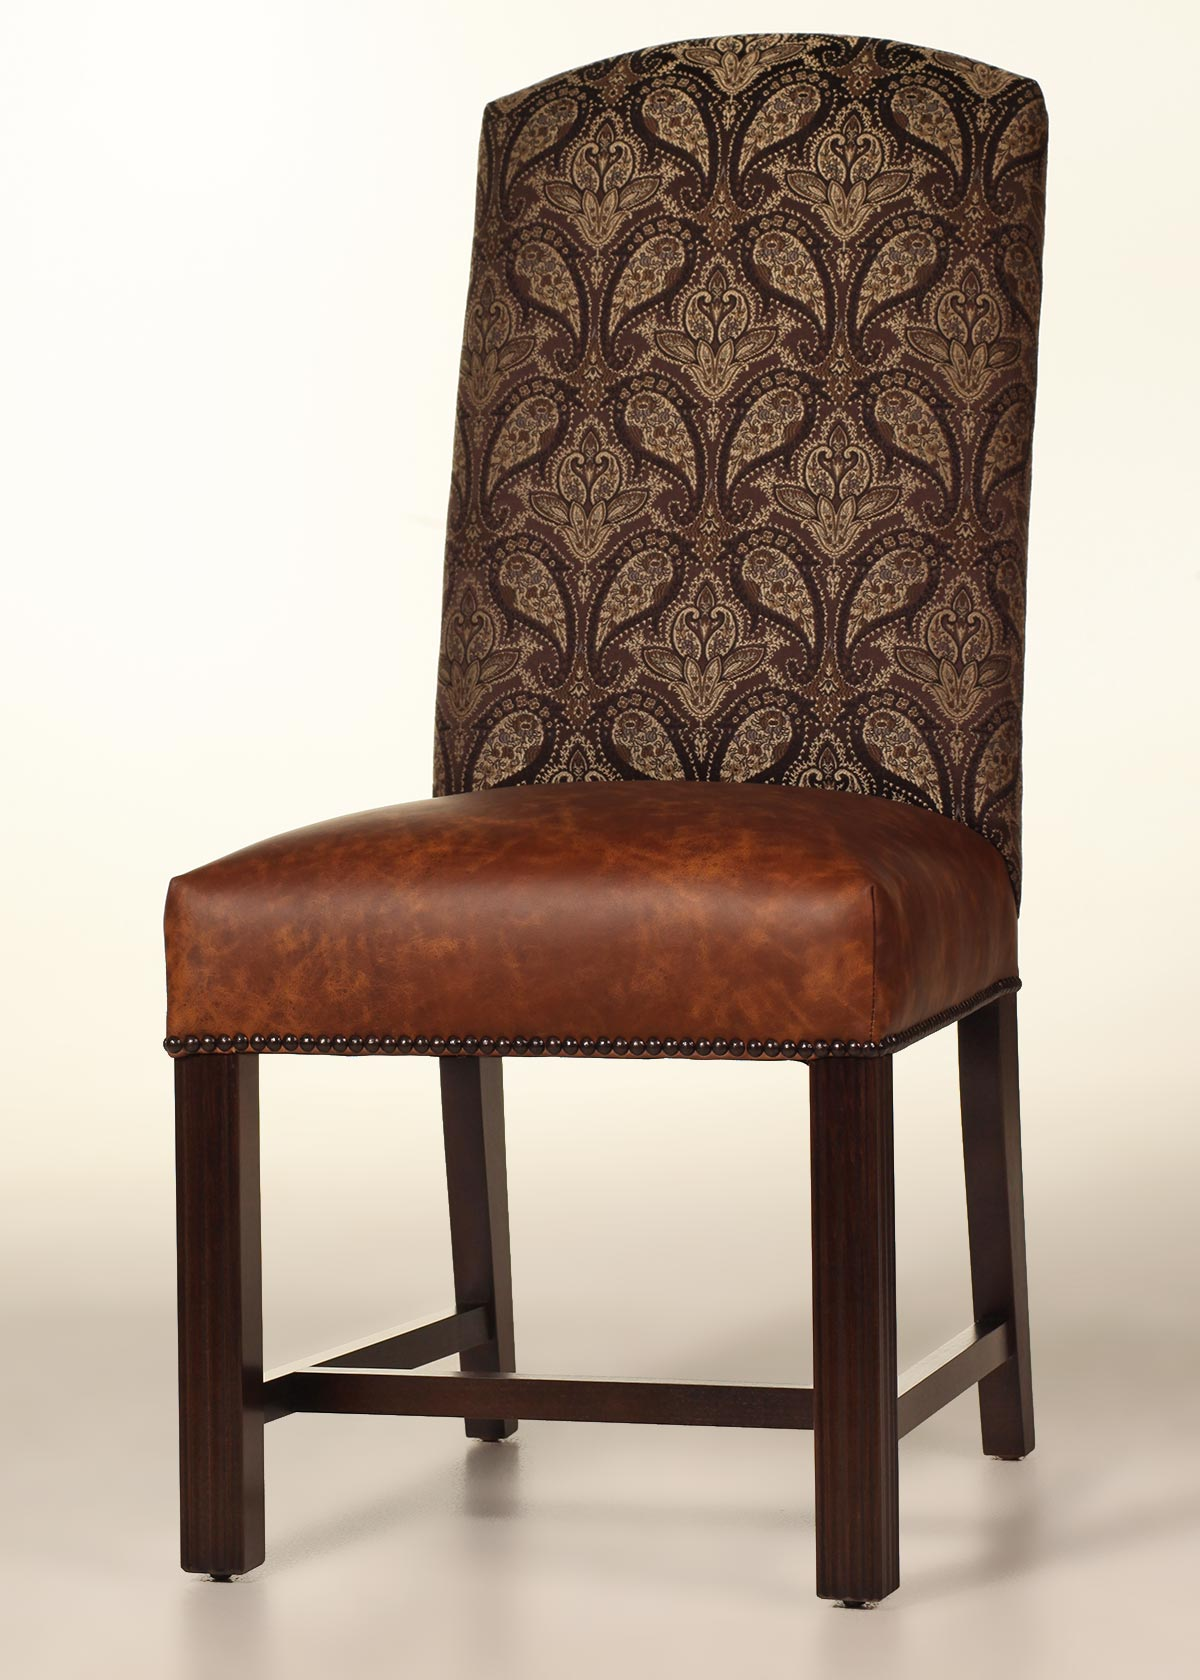 Cambridge Dining Chair With Leather Seat And Nailhead Trim